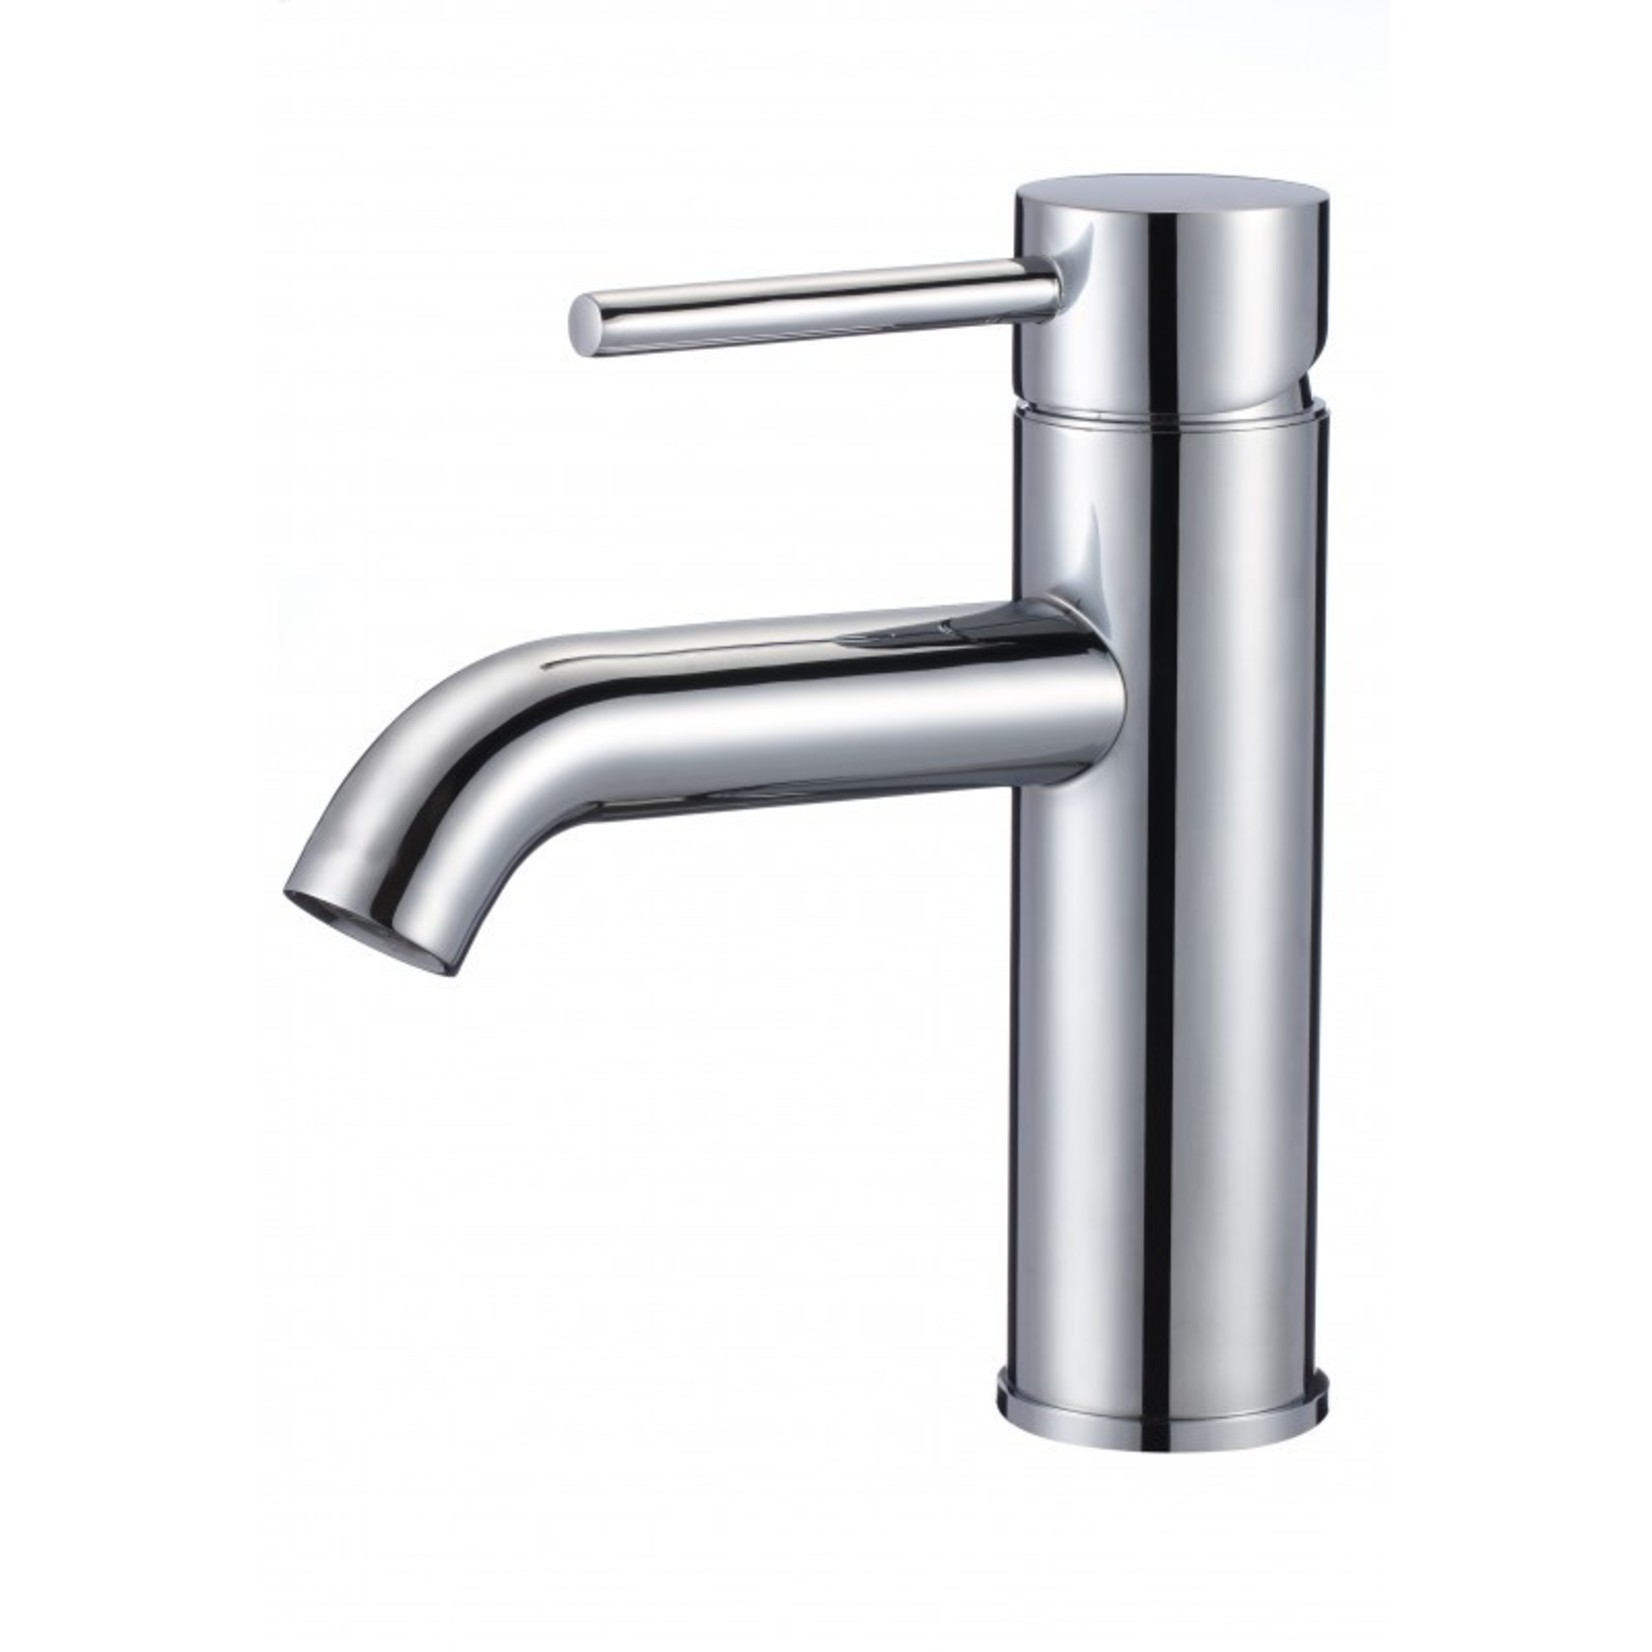 Robinet de lavabo chrome collection Elyn 113-10